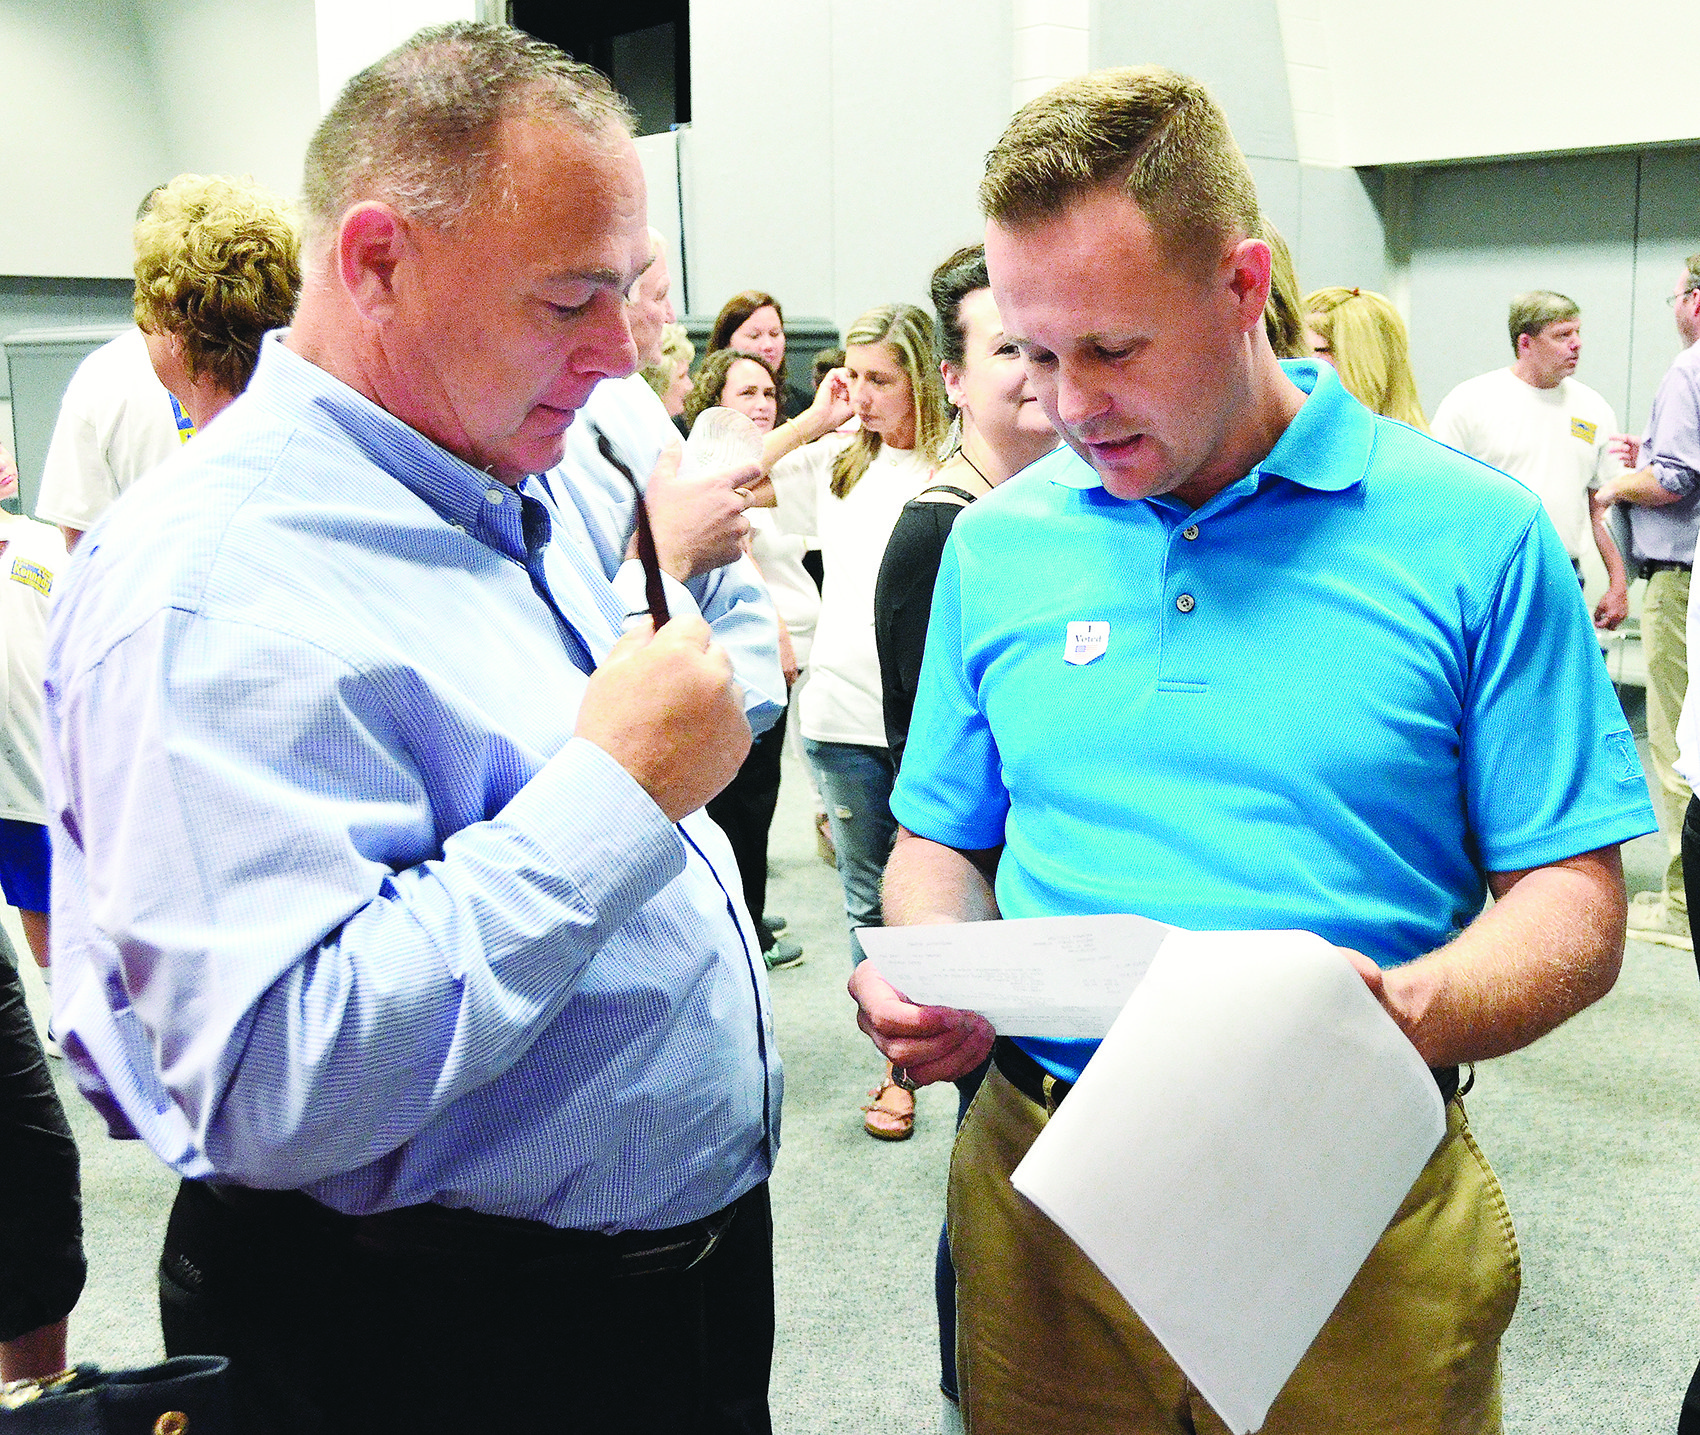 Nick Smith, at right, and Walker County coroner Joey Vick look over vote totals from Tuesday's Republican primary election at the Jasper Civic Center. As of now, Smith and current Walker County Sheriff Jim Underwood will meet in a runoff on July 17. That could change once provisional ballots are counted next Tuesday.